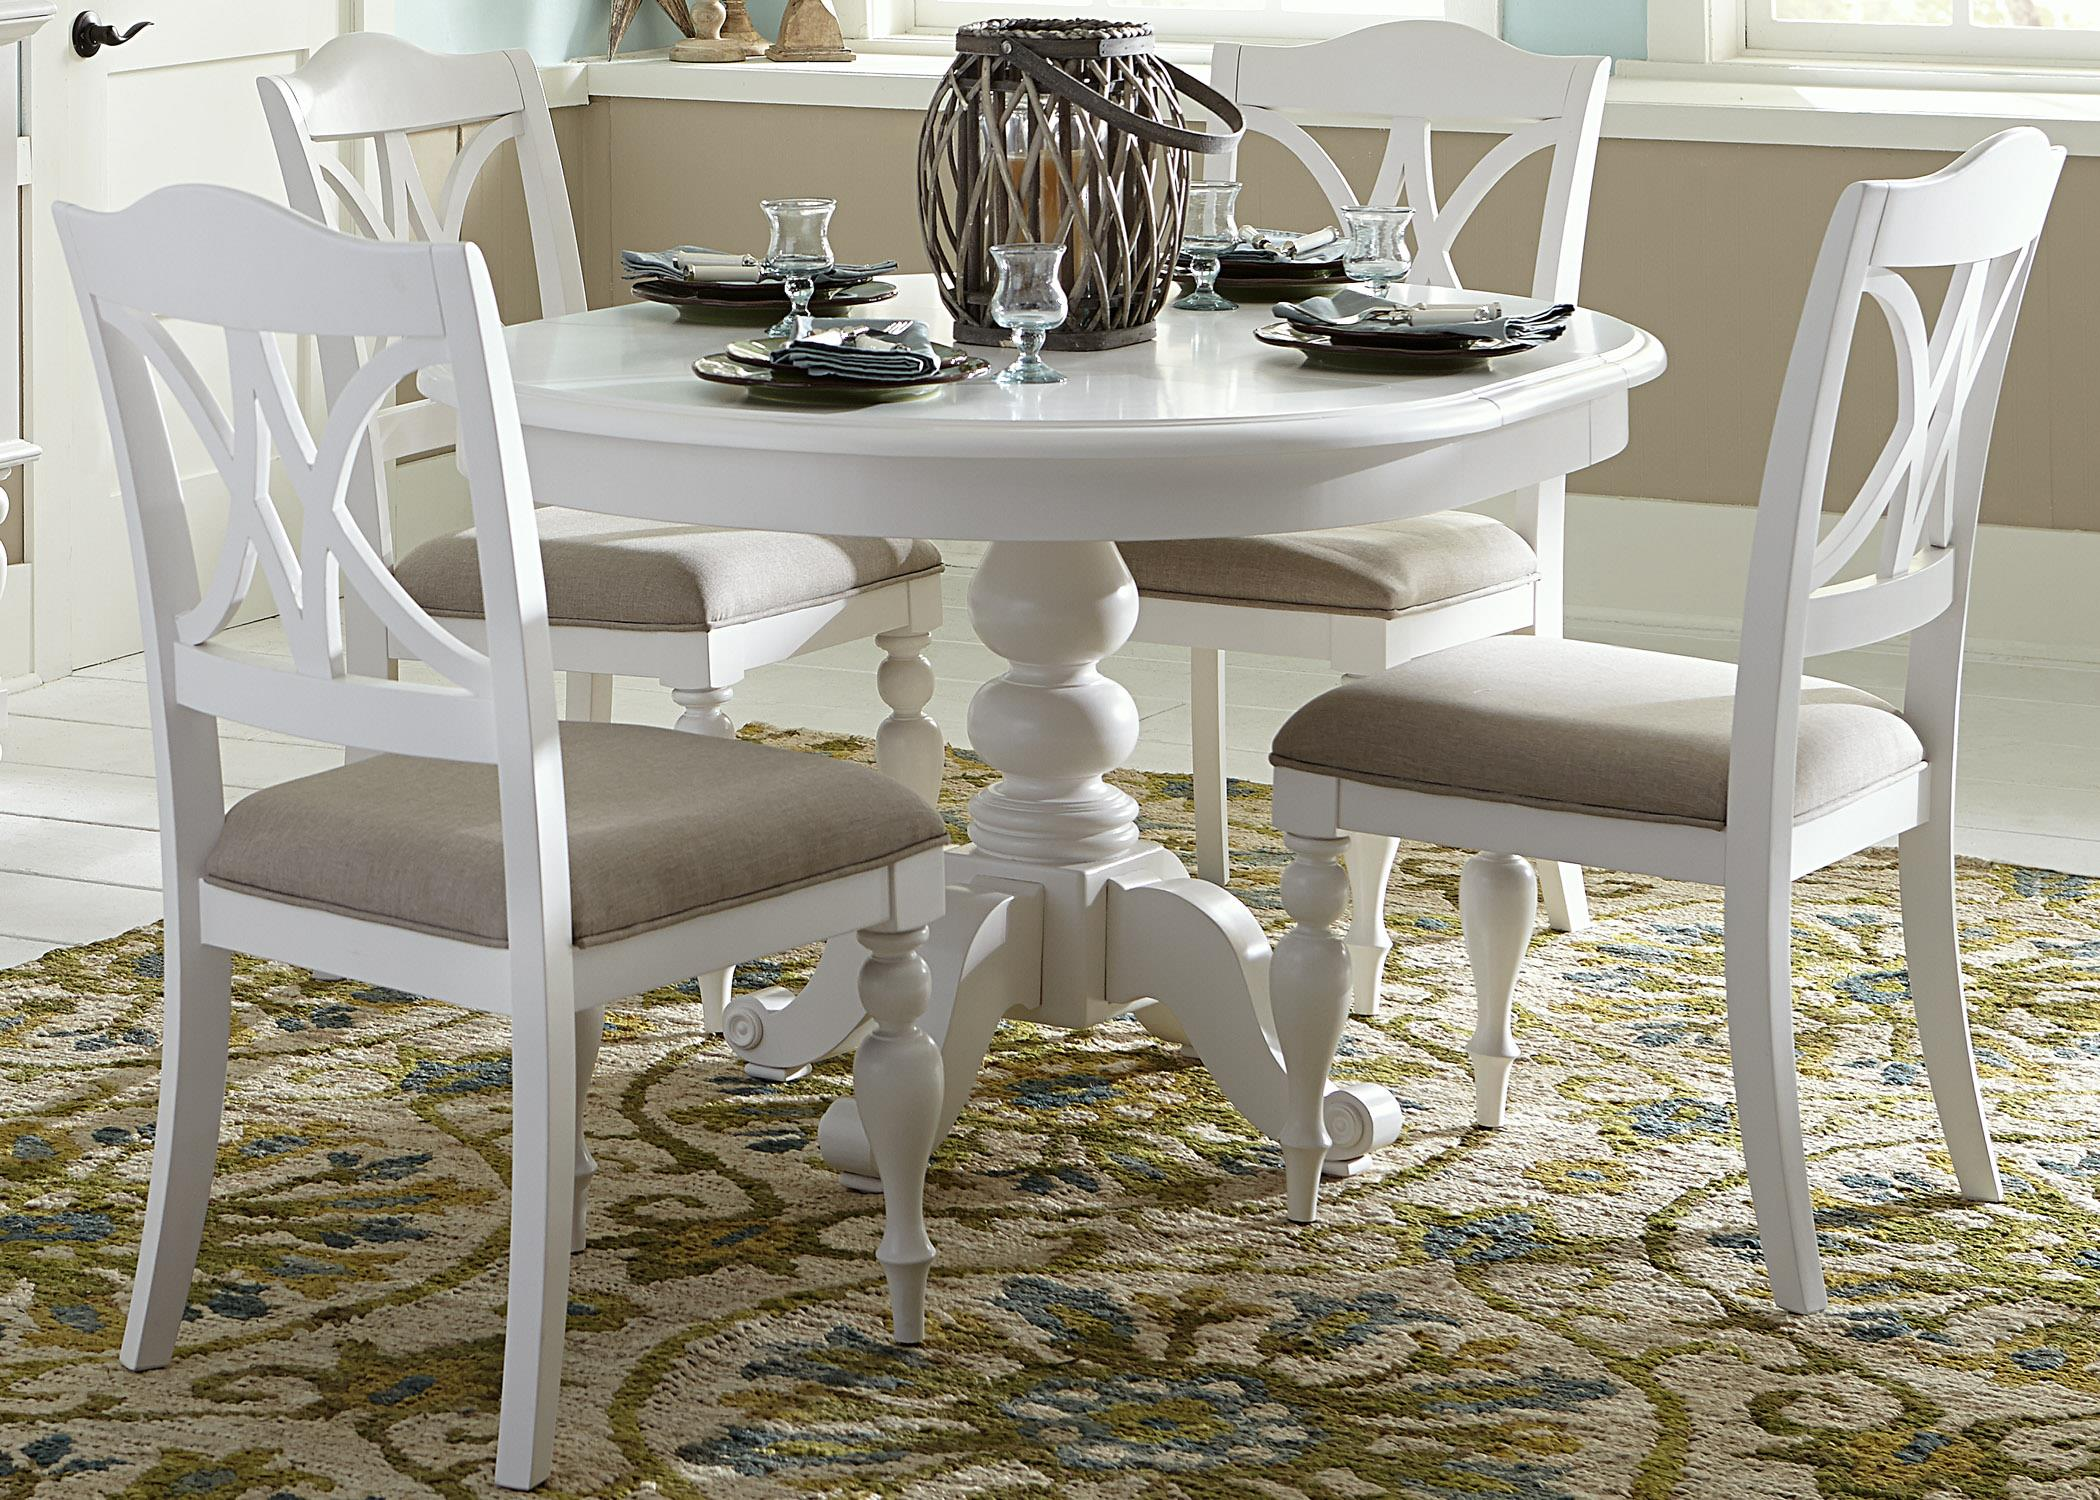 Liberty Furniture Summer House I Round Pedestal Table - Item Number 607-T4254+ & Liberty Furniture Summer House I Round Table with Turned Pedestal ...